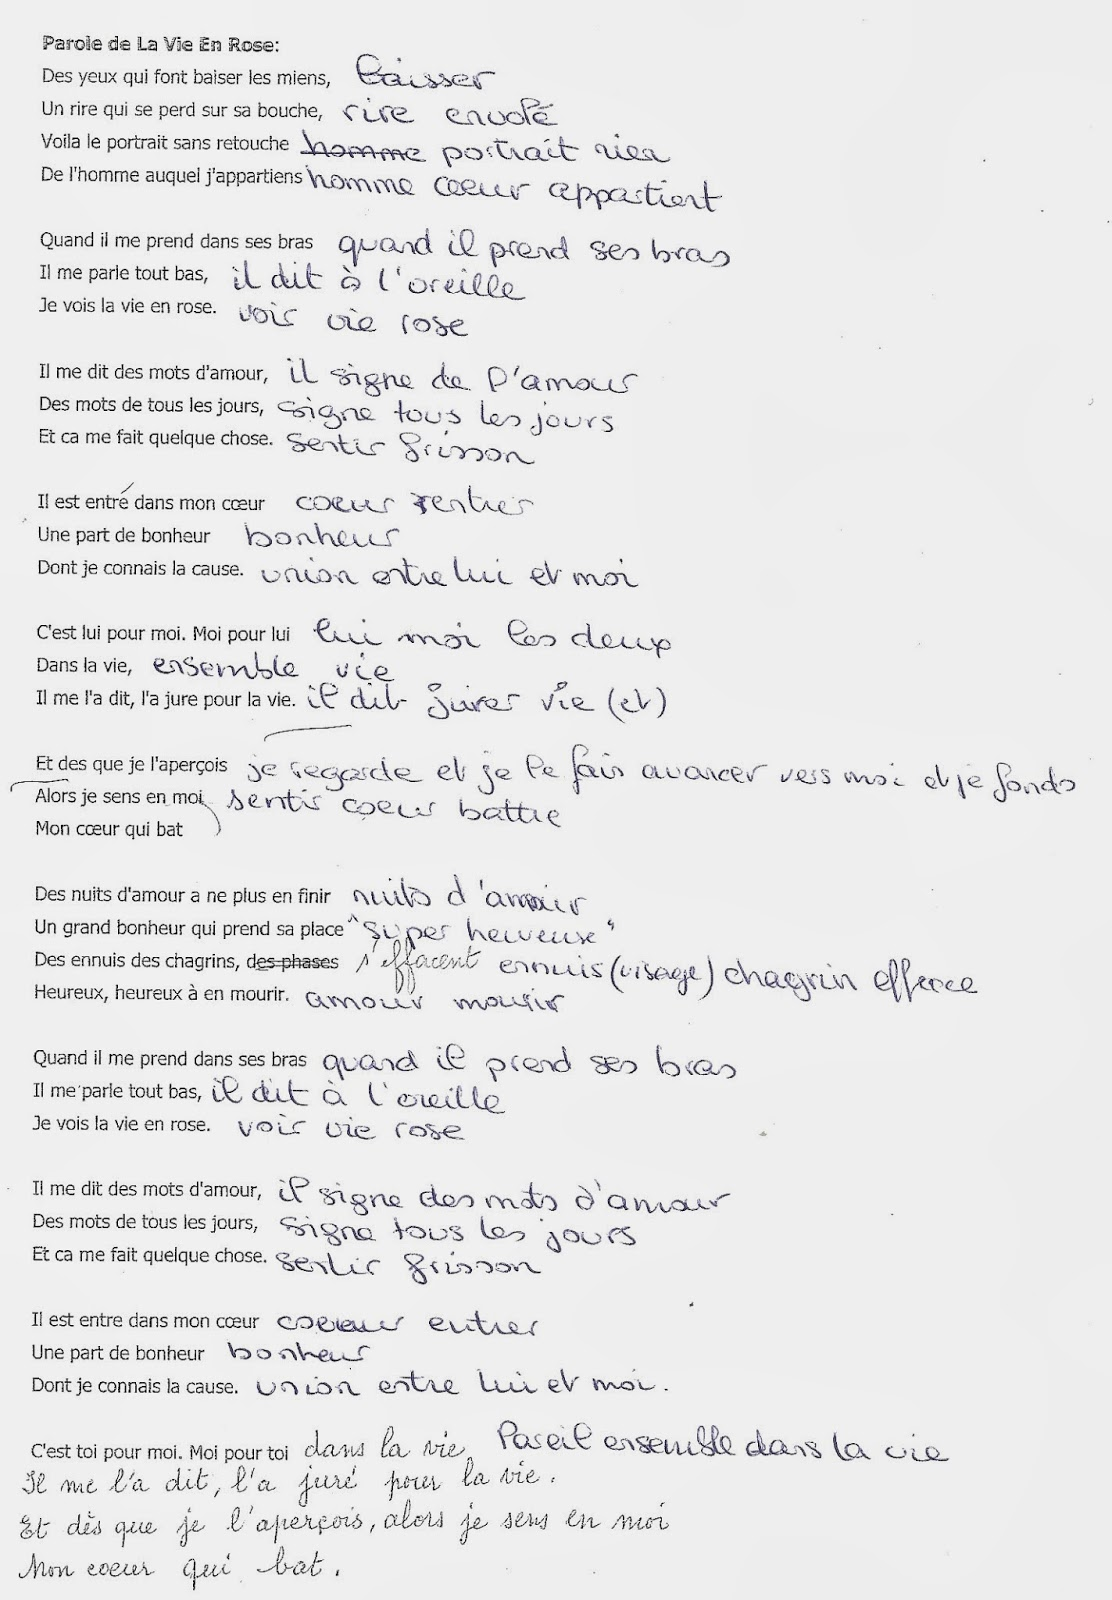 Paroles La vie en blues par Warren - Paroles.net (lyrics)